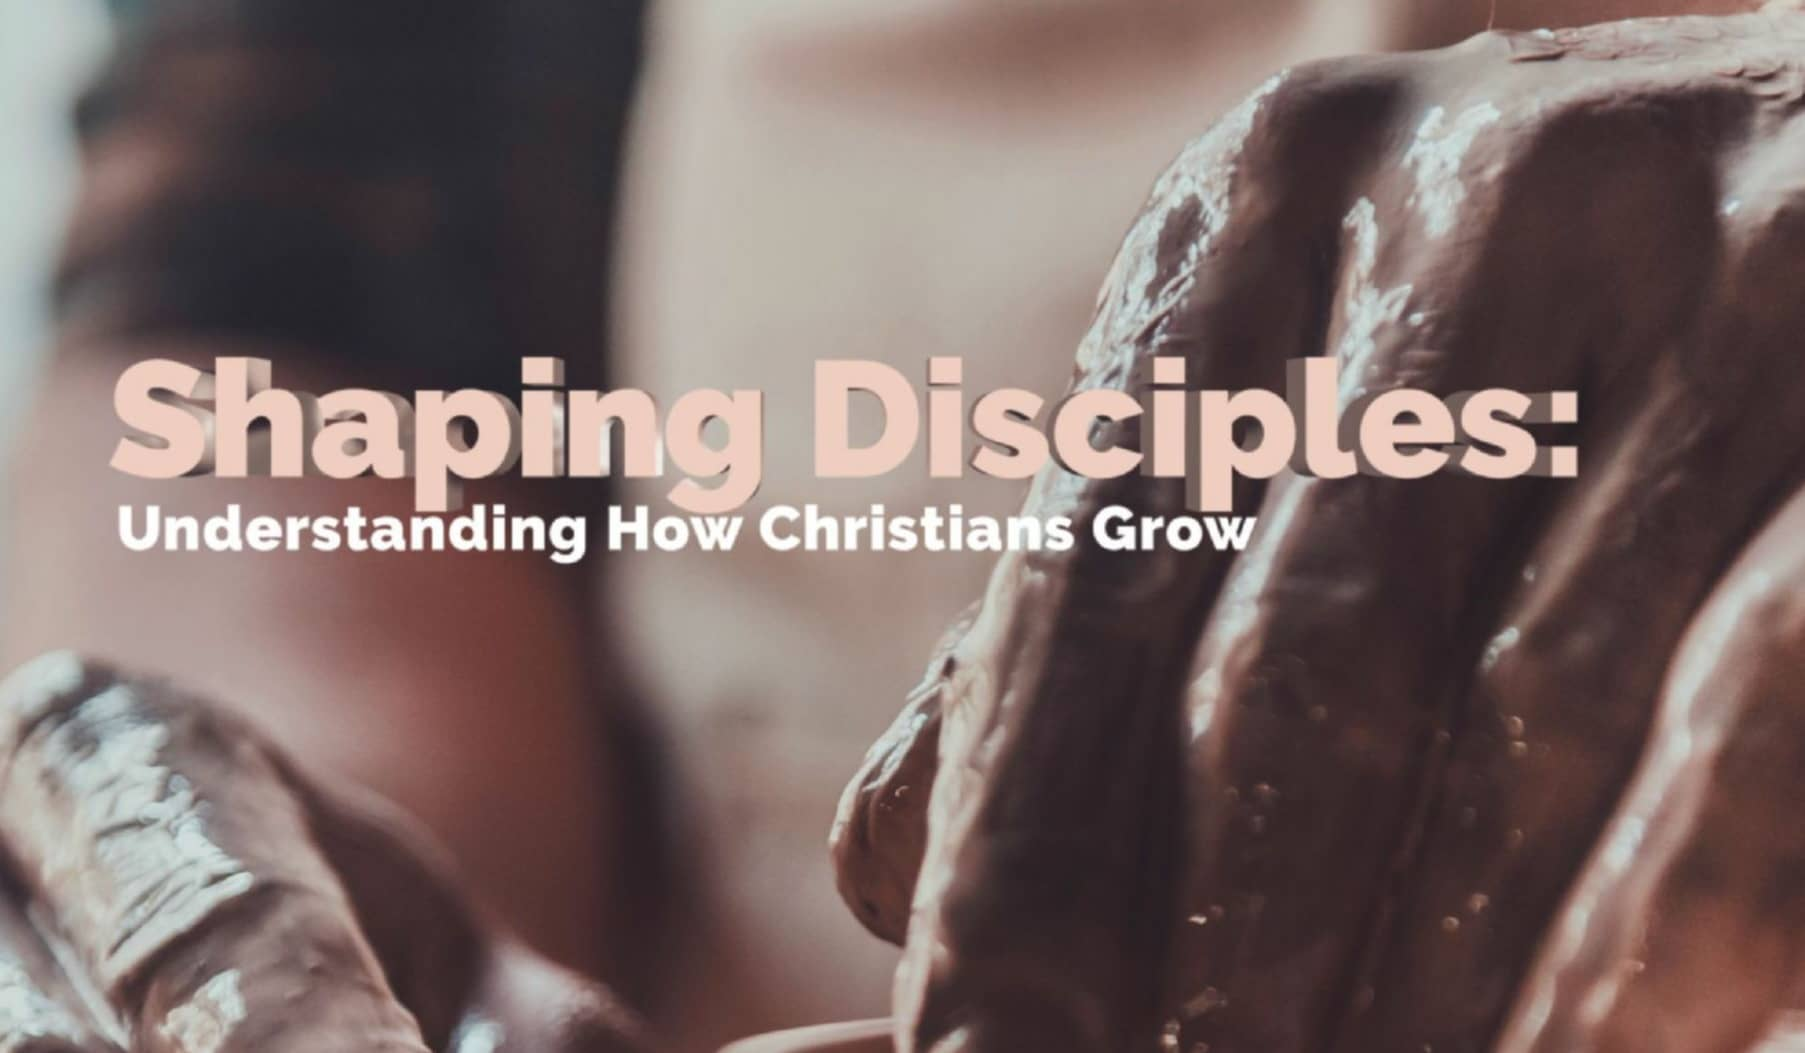 Shaping Disciples: Understanding How Christians Grow